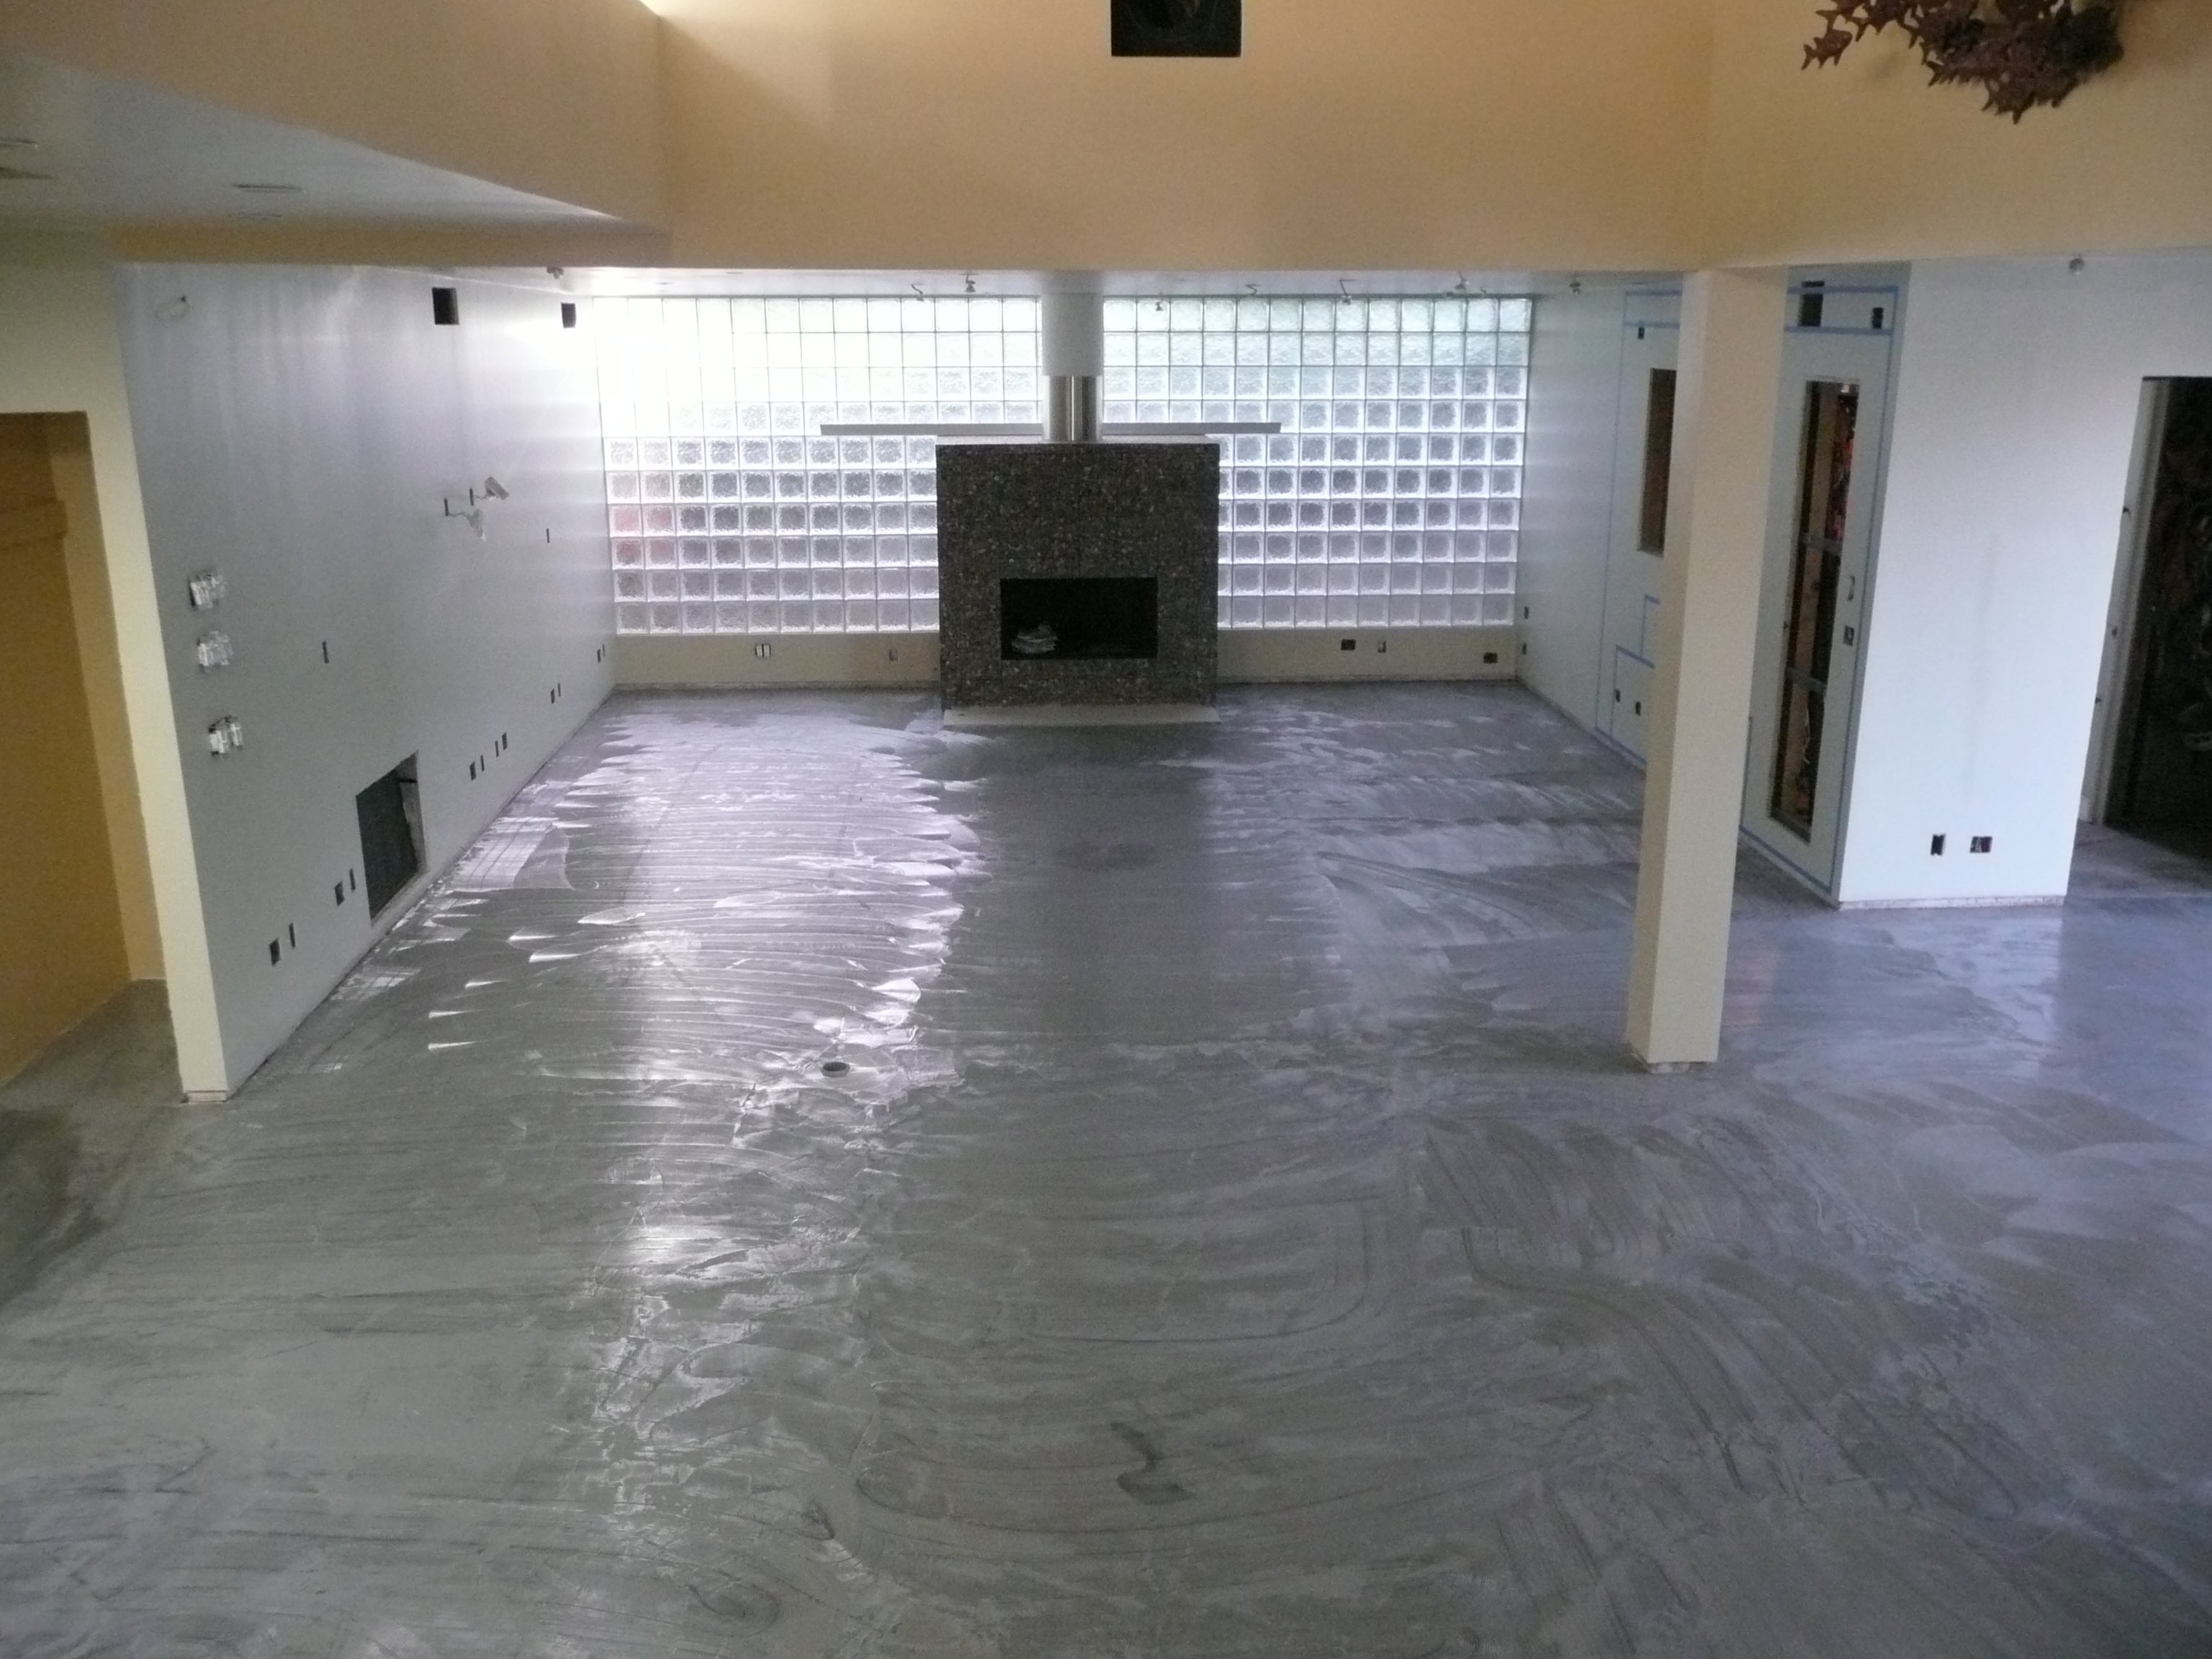 "Theater construction - reflective: slab/maple floors, glass block wall, stone fireplace, drywall on 3/4"" ply Walls soundproofed with 3.5"" solid foam and 1/4"" acoustical rubber. Ceilings soundproofed with 6"" solid foam, 6"" fiberglass, 1.5"" ply, 3"" solid foam"